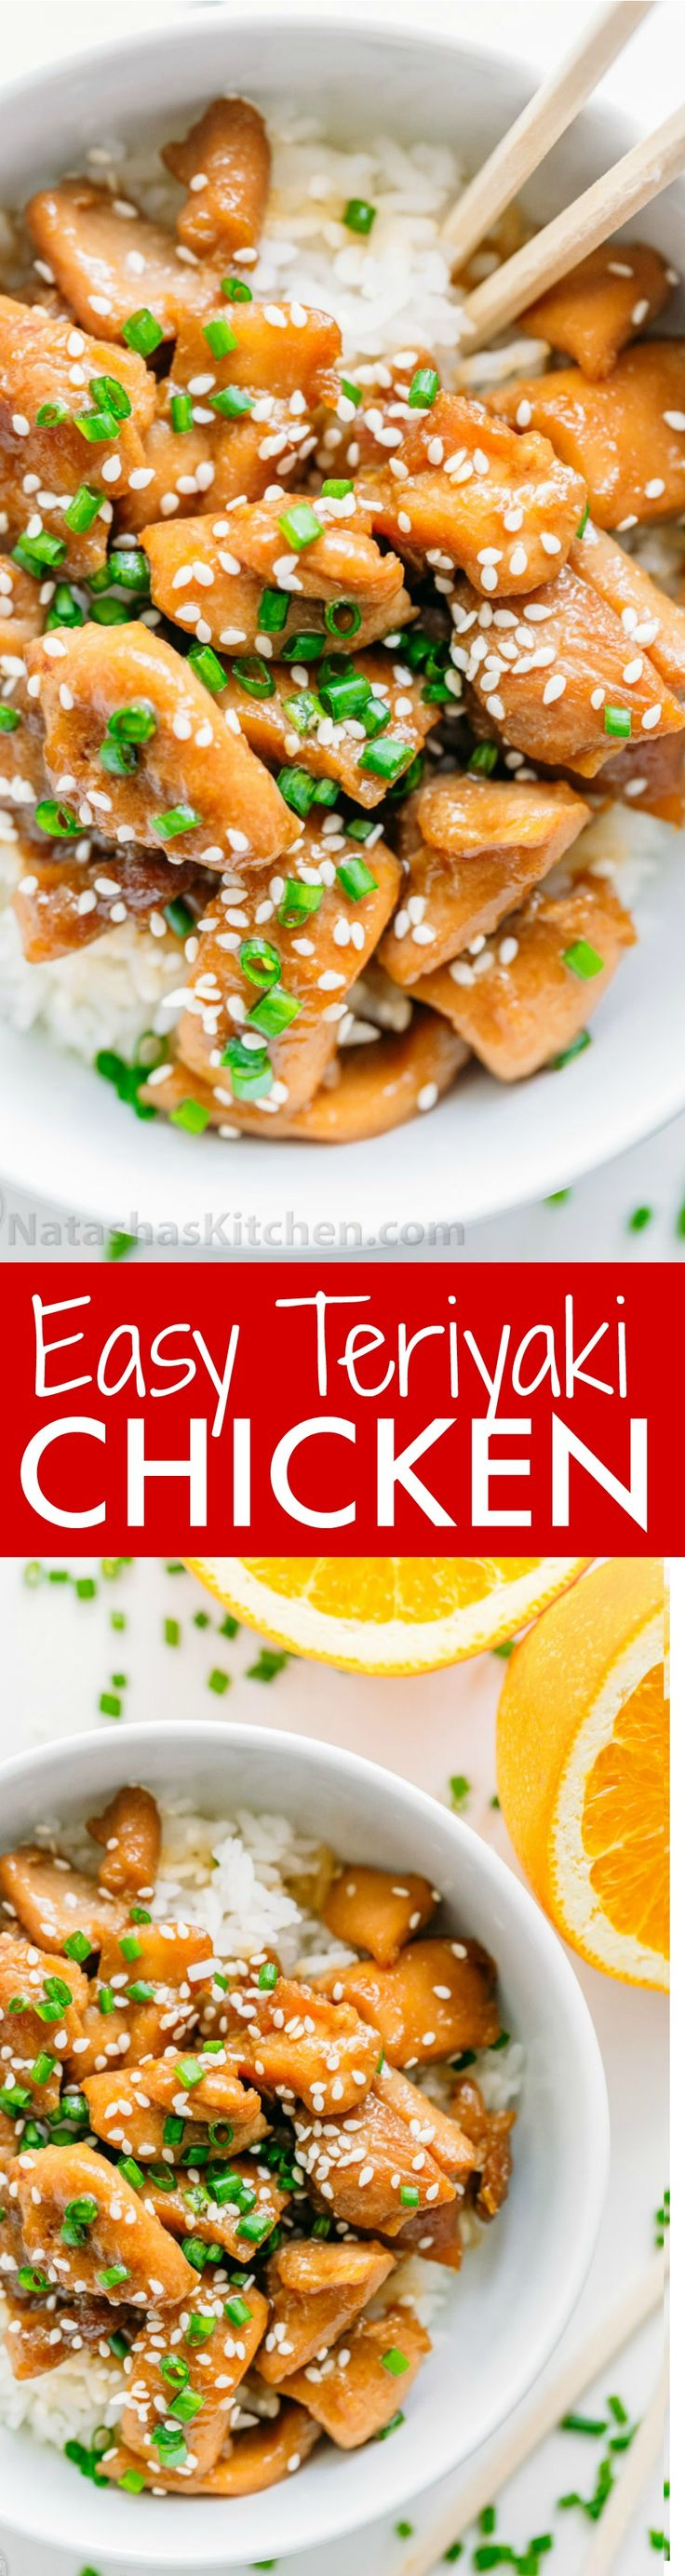 894 best quick easy recipes images on pinterest cooking food this chicken teriyaki easy to make and the sauce is just right a chicken teriyaki recipe that totally satisfies the craving for takeout only way better forumfinder Images